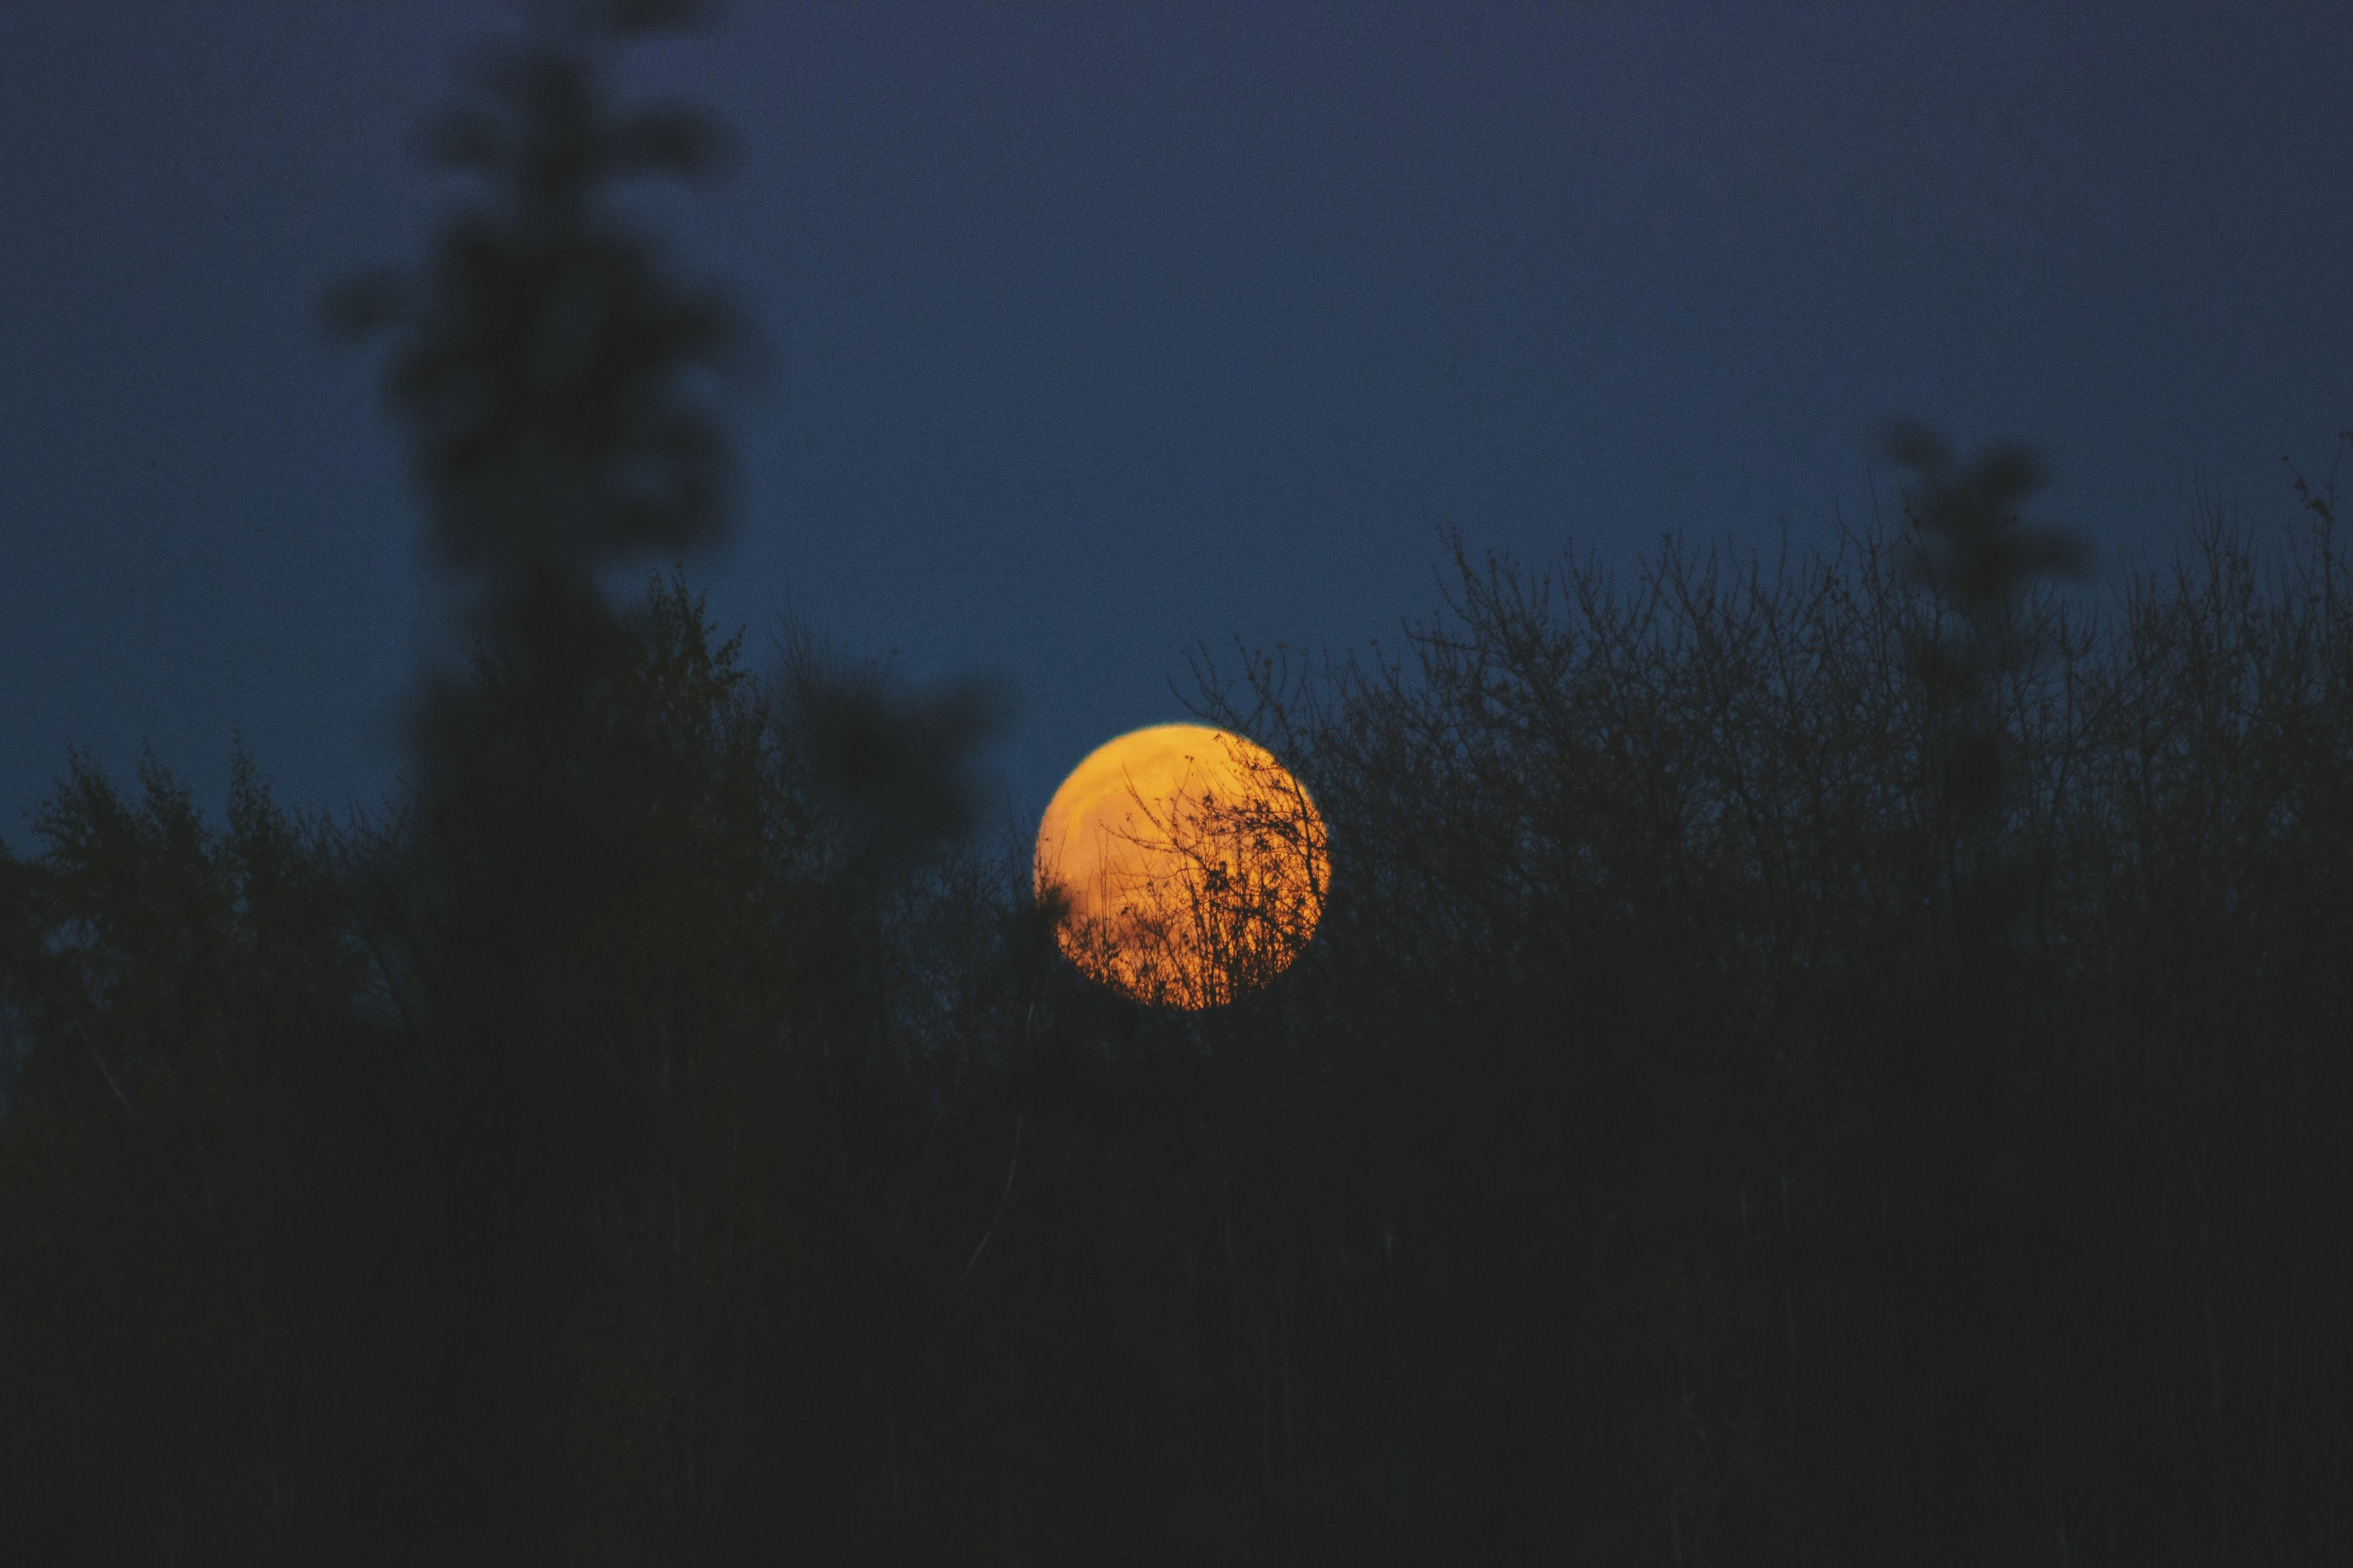 Moon rising over a forest